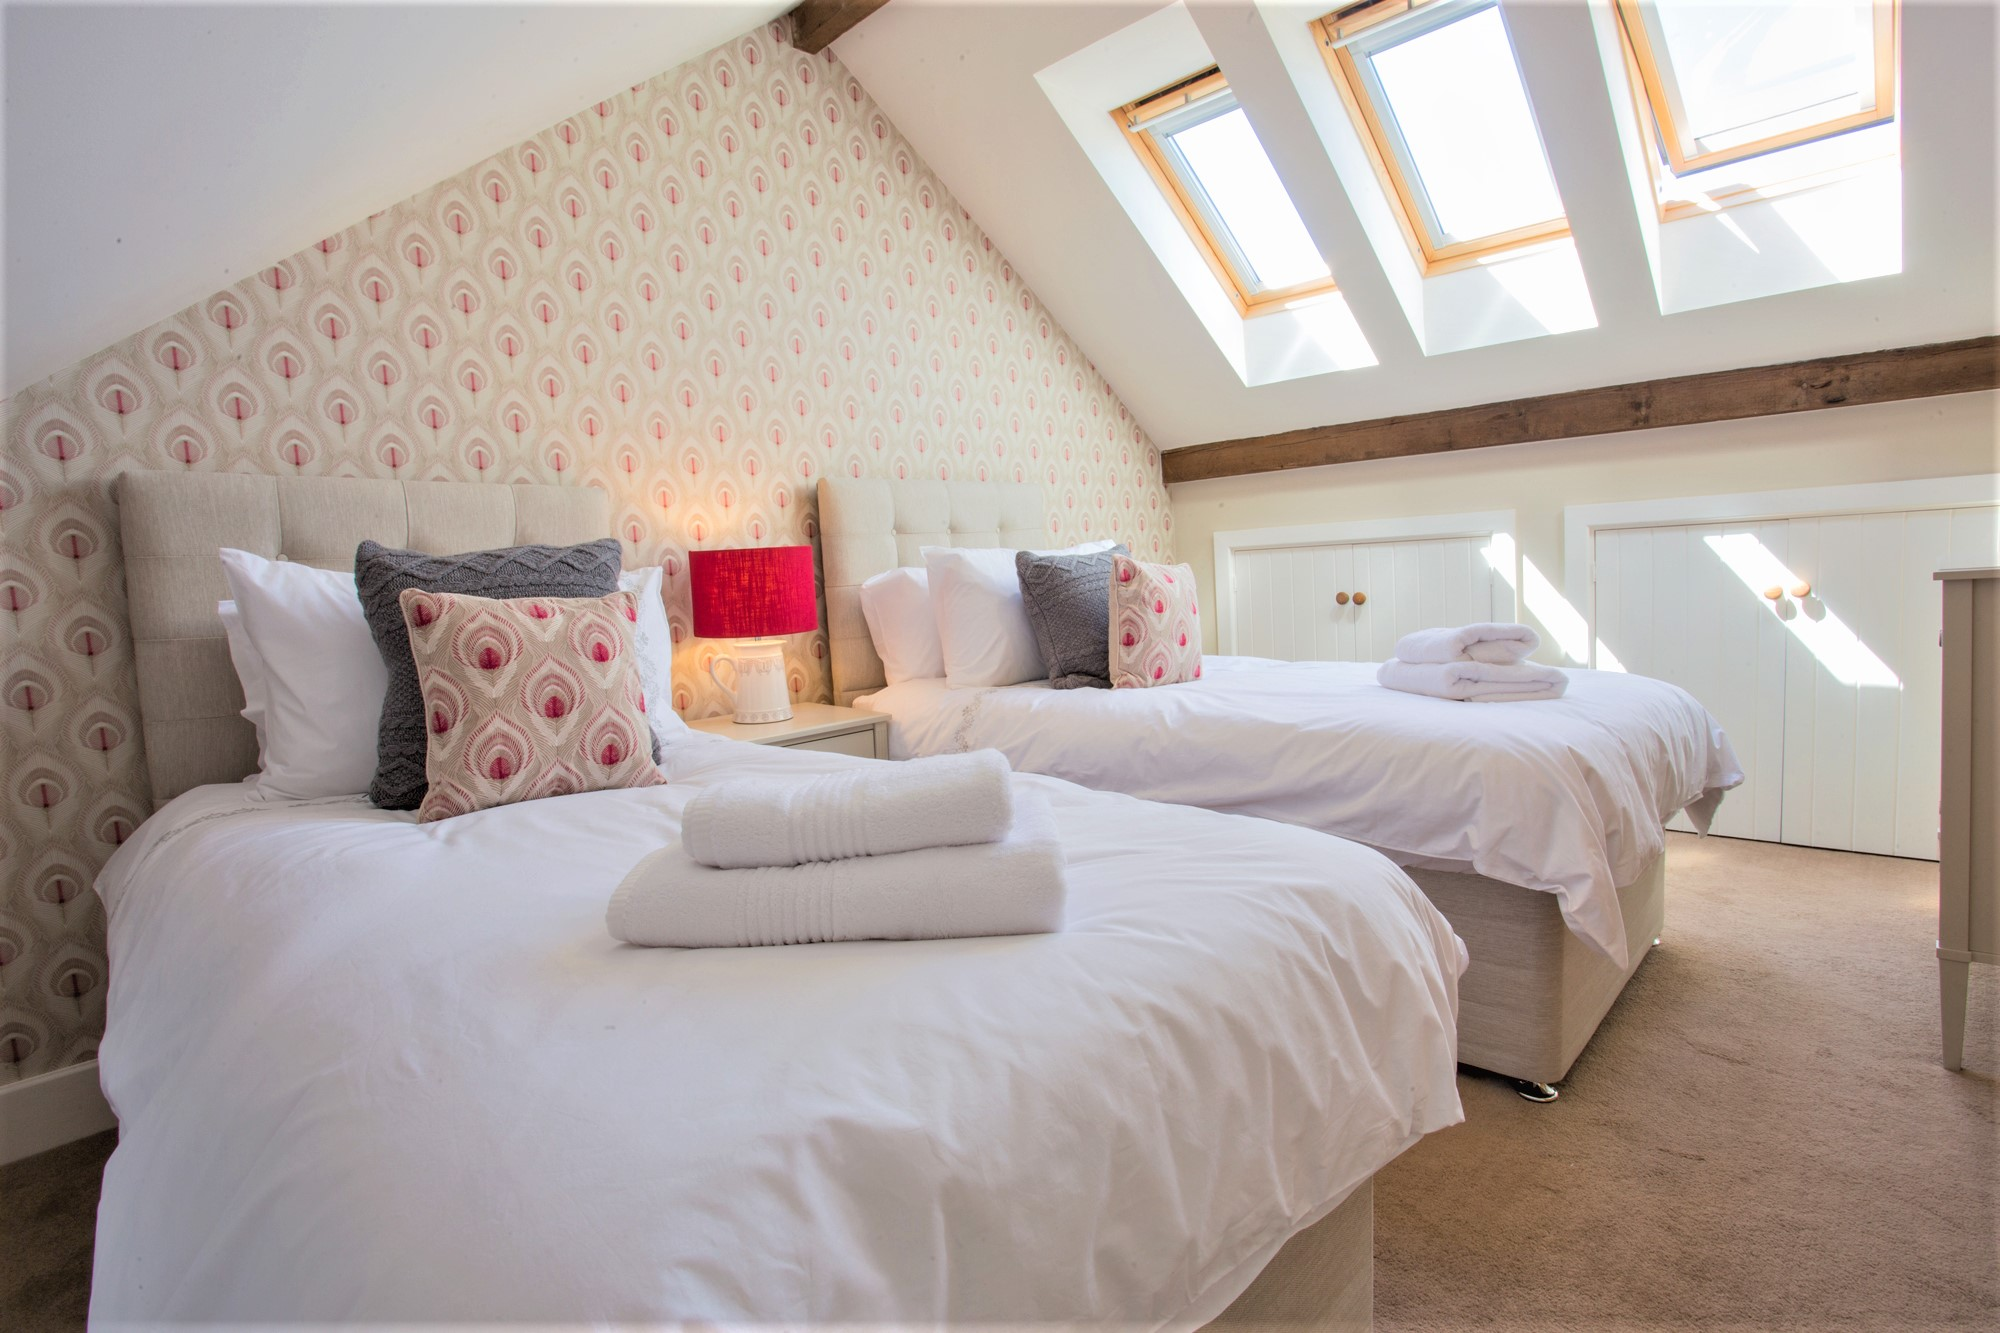 cottages for families in Northumberland in the countryside, where to stay near Cheviot Hills Thrunton Woods, cottages near Bamburgh and the beach